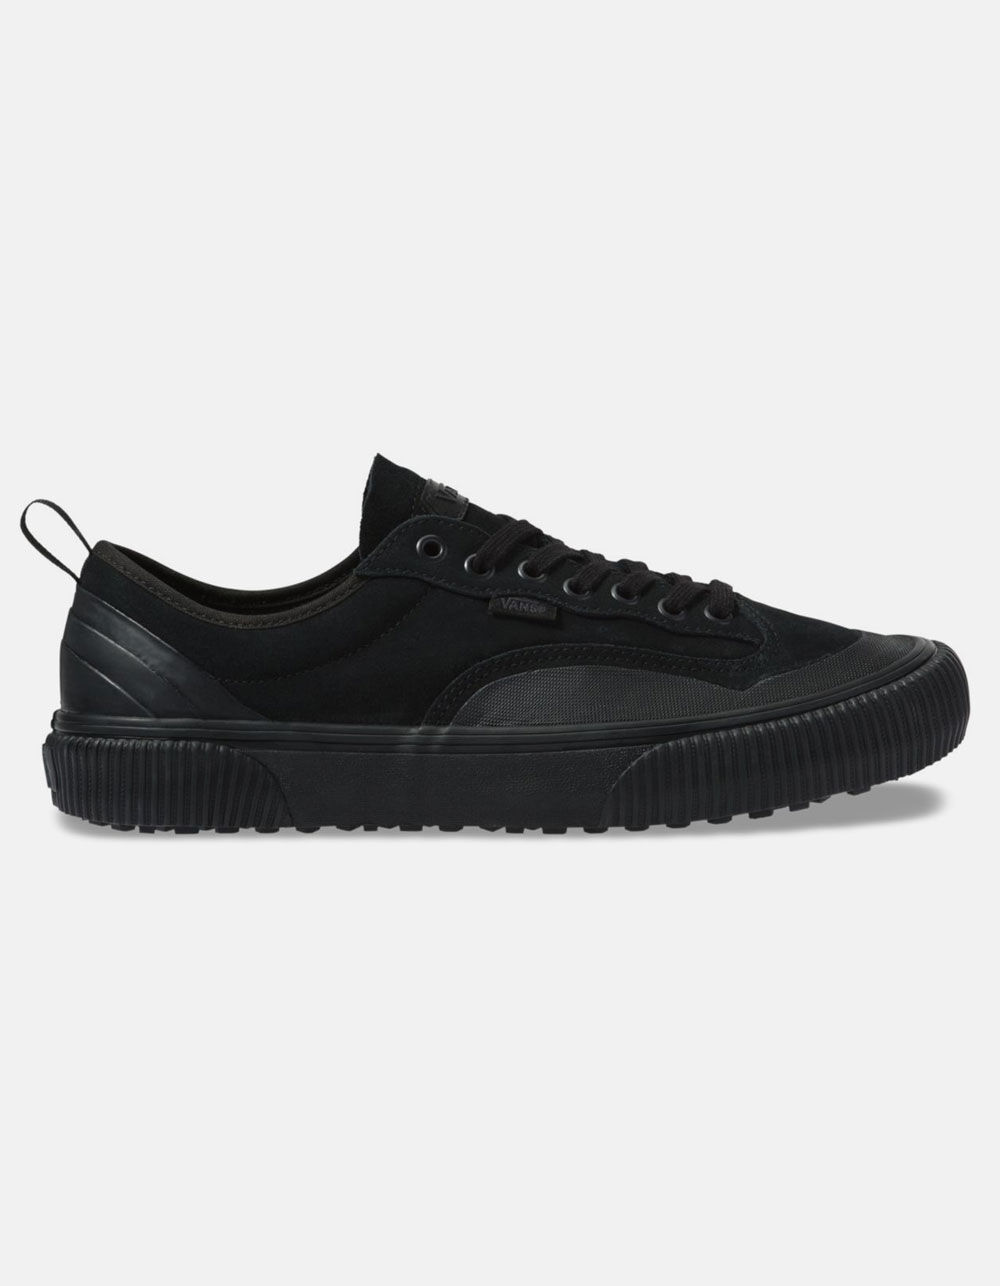 VANS Destruct SF Black Shoes